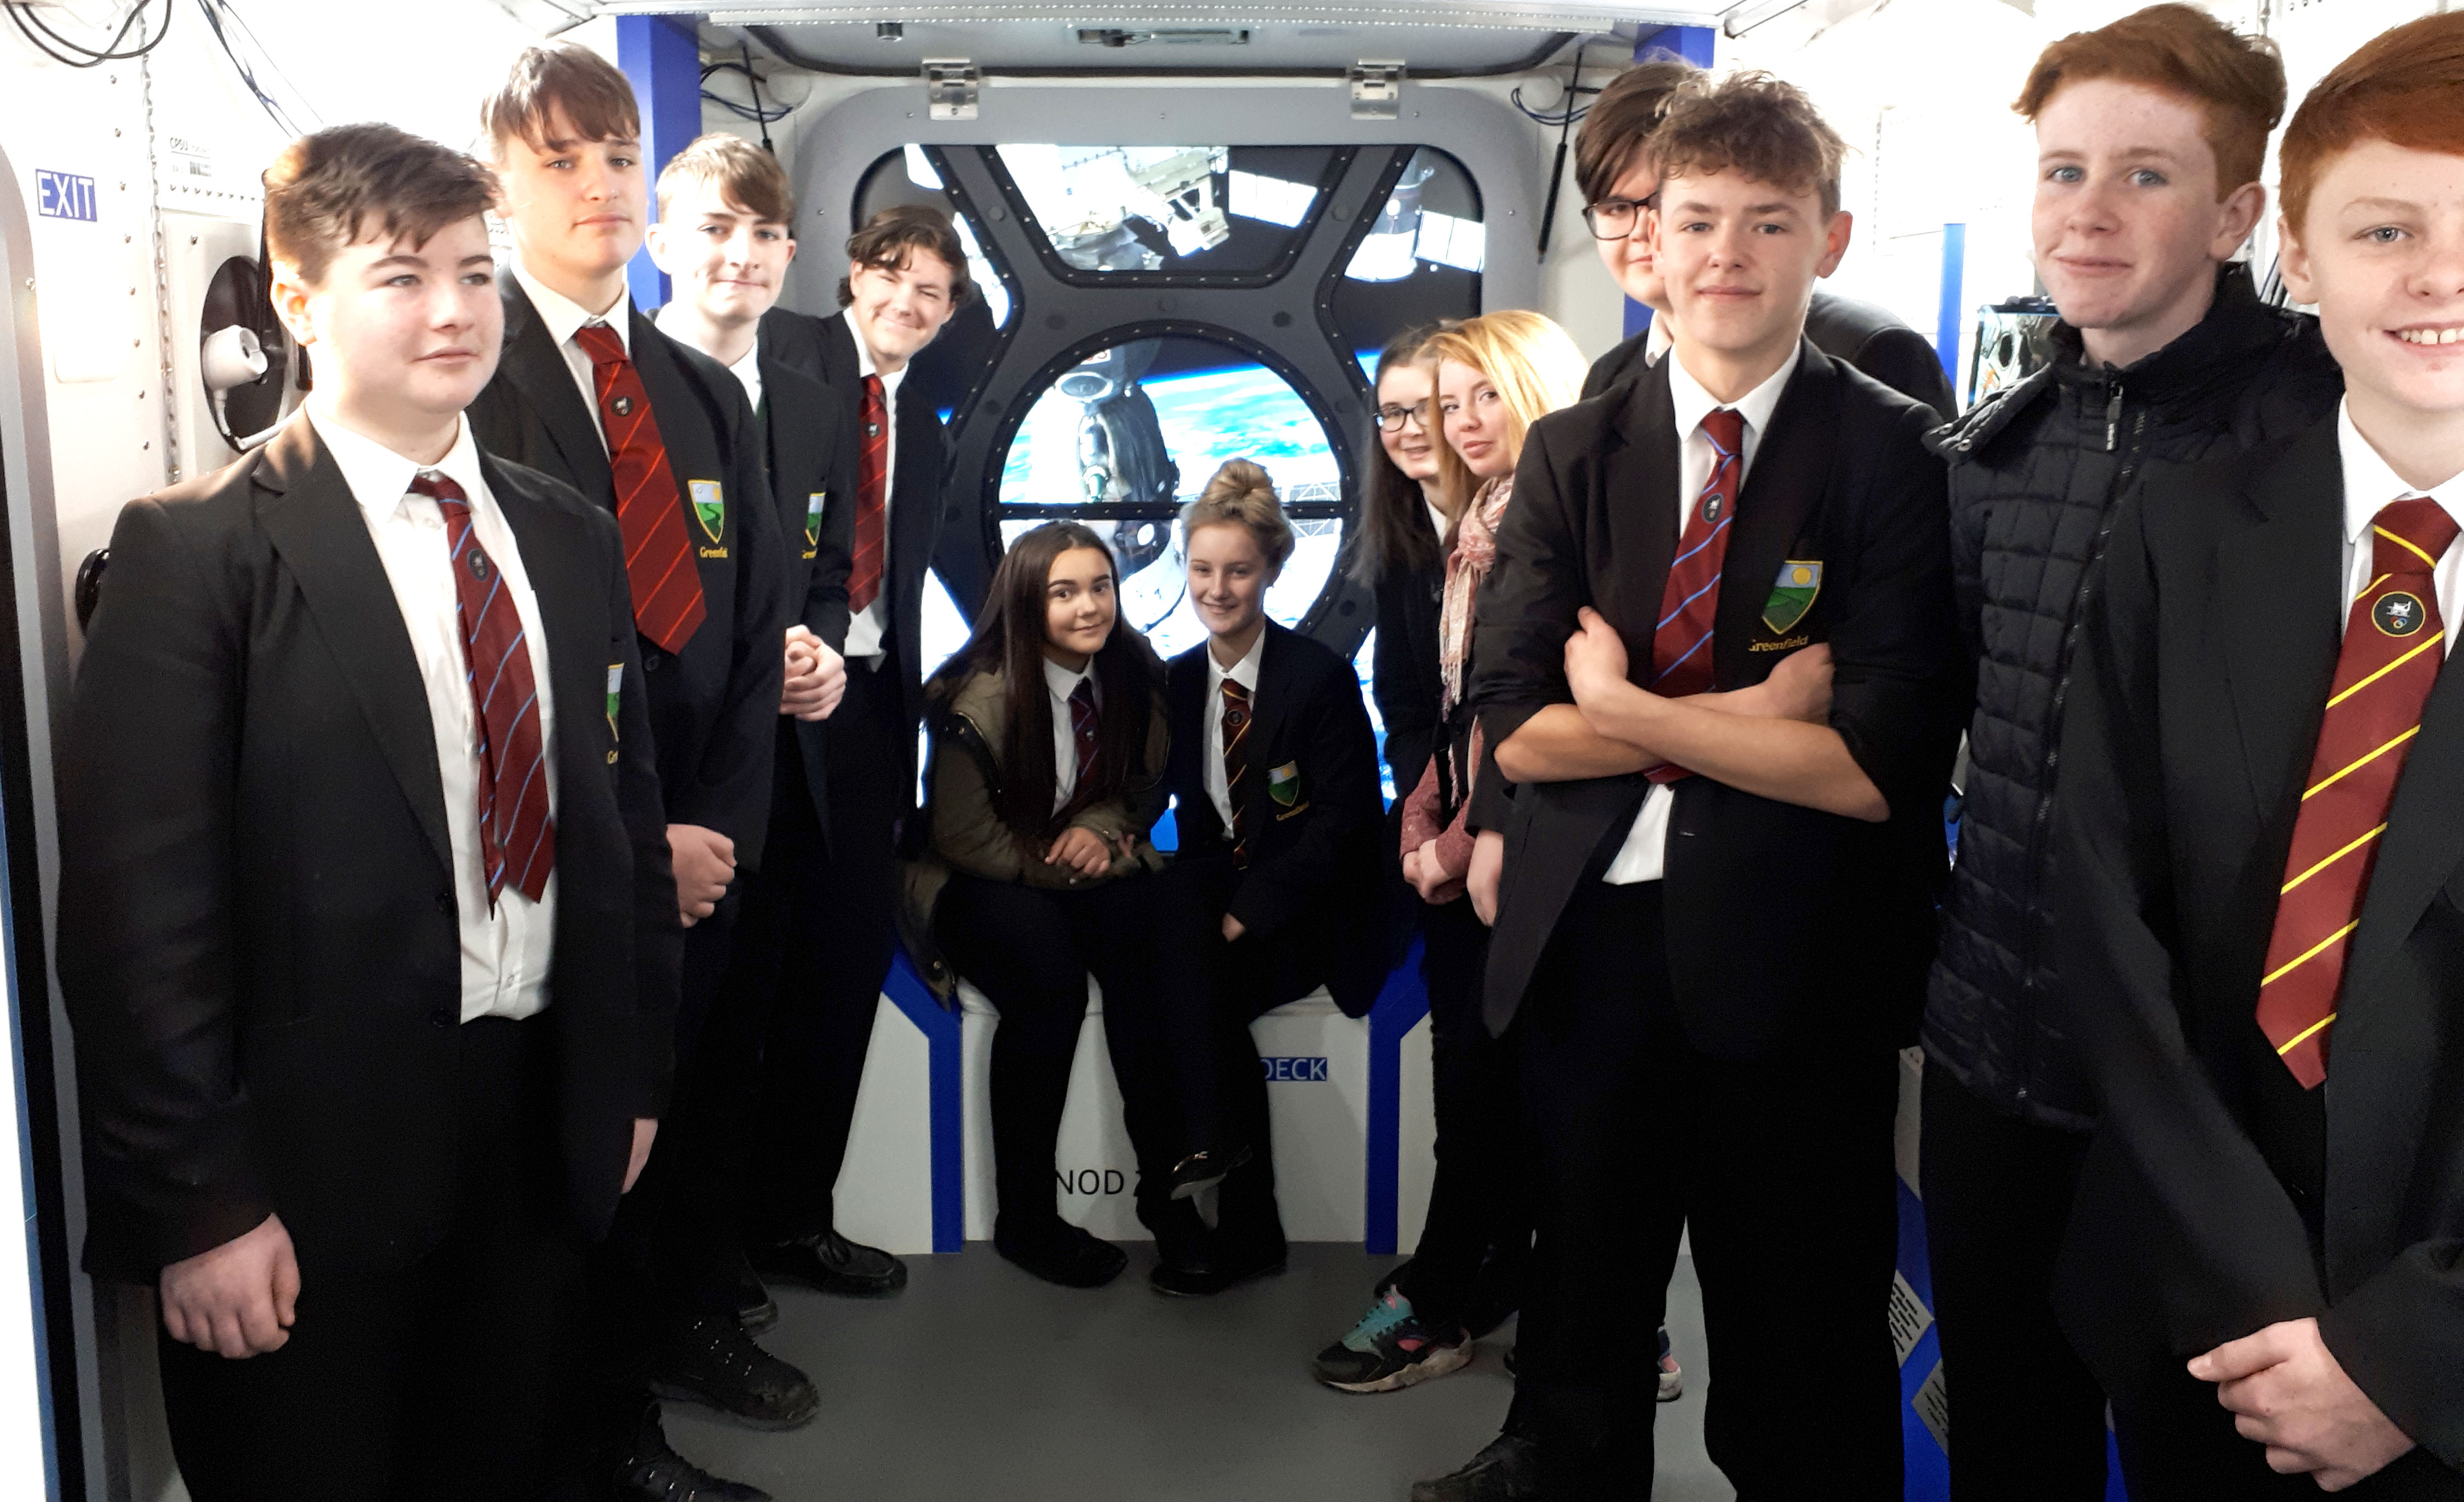 Greenfield Students Become Peak Virtual Astronauts